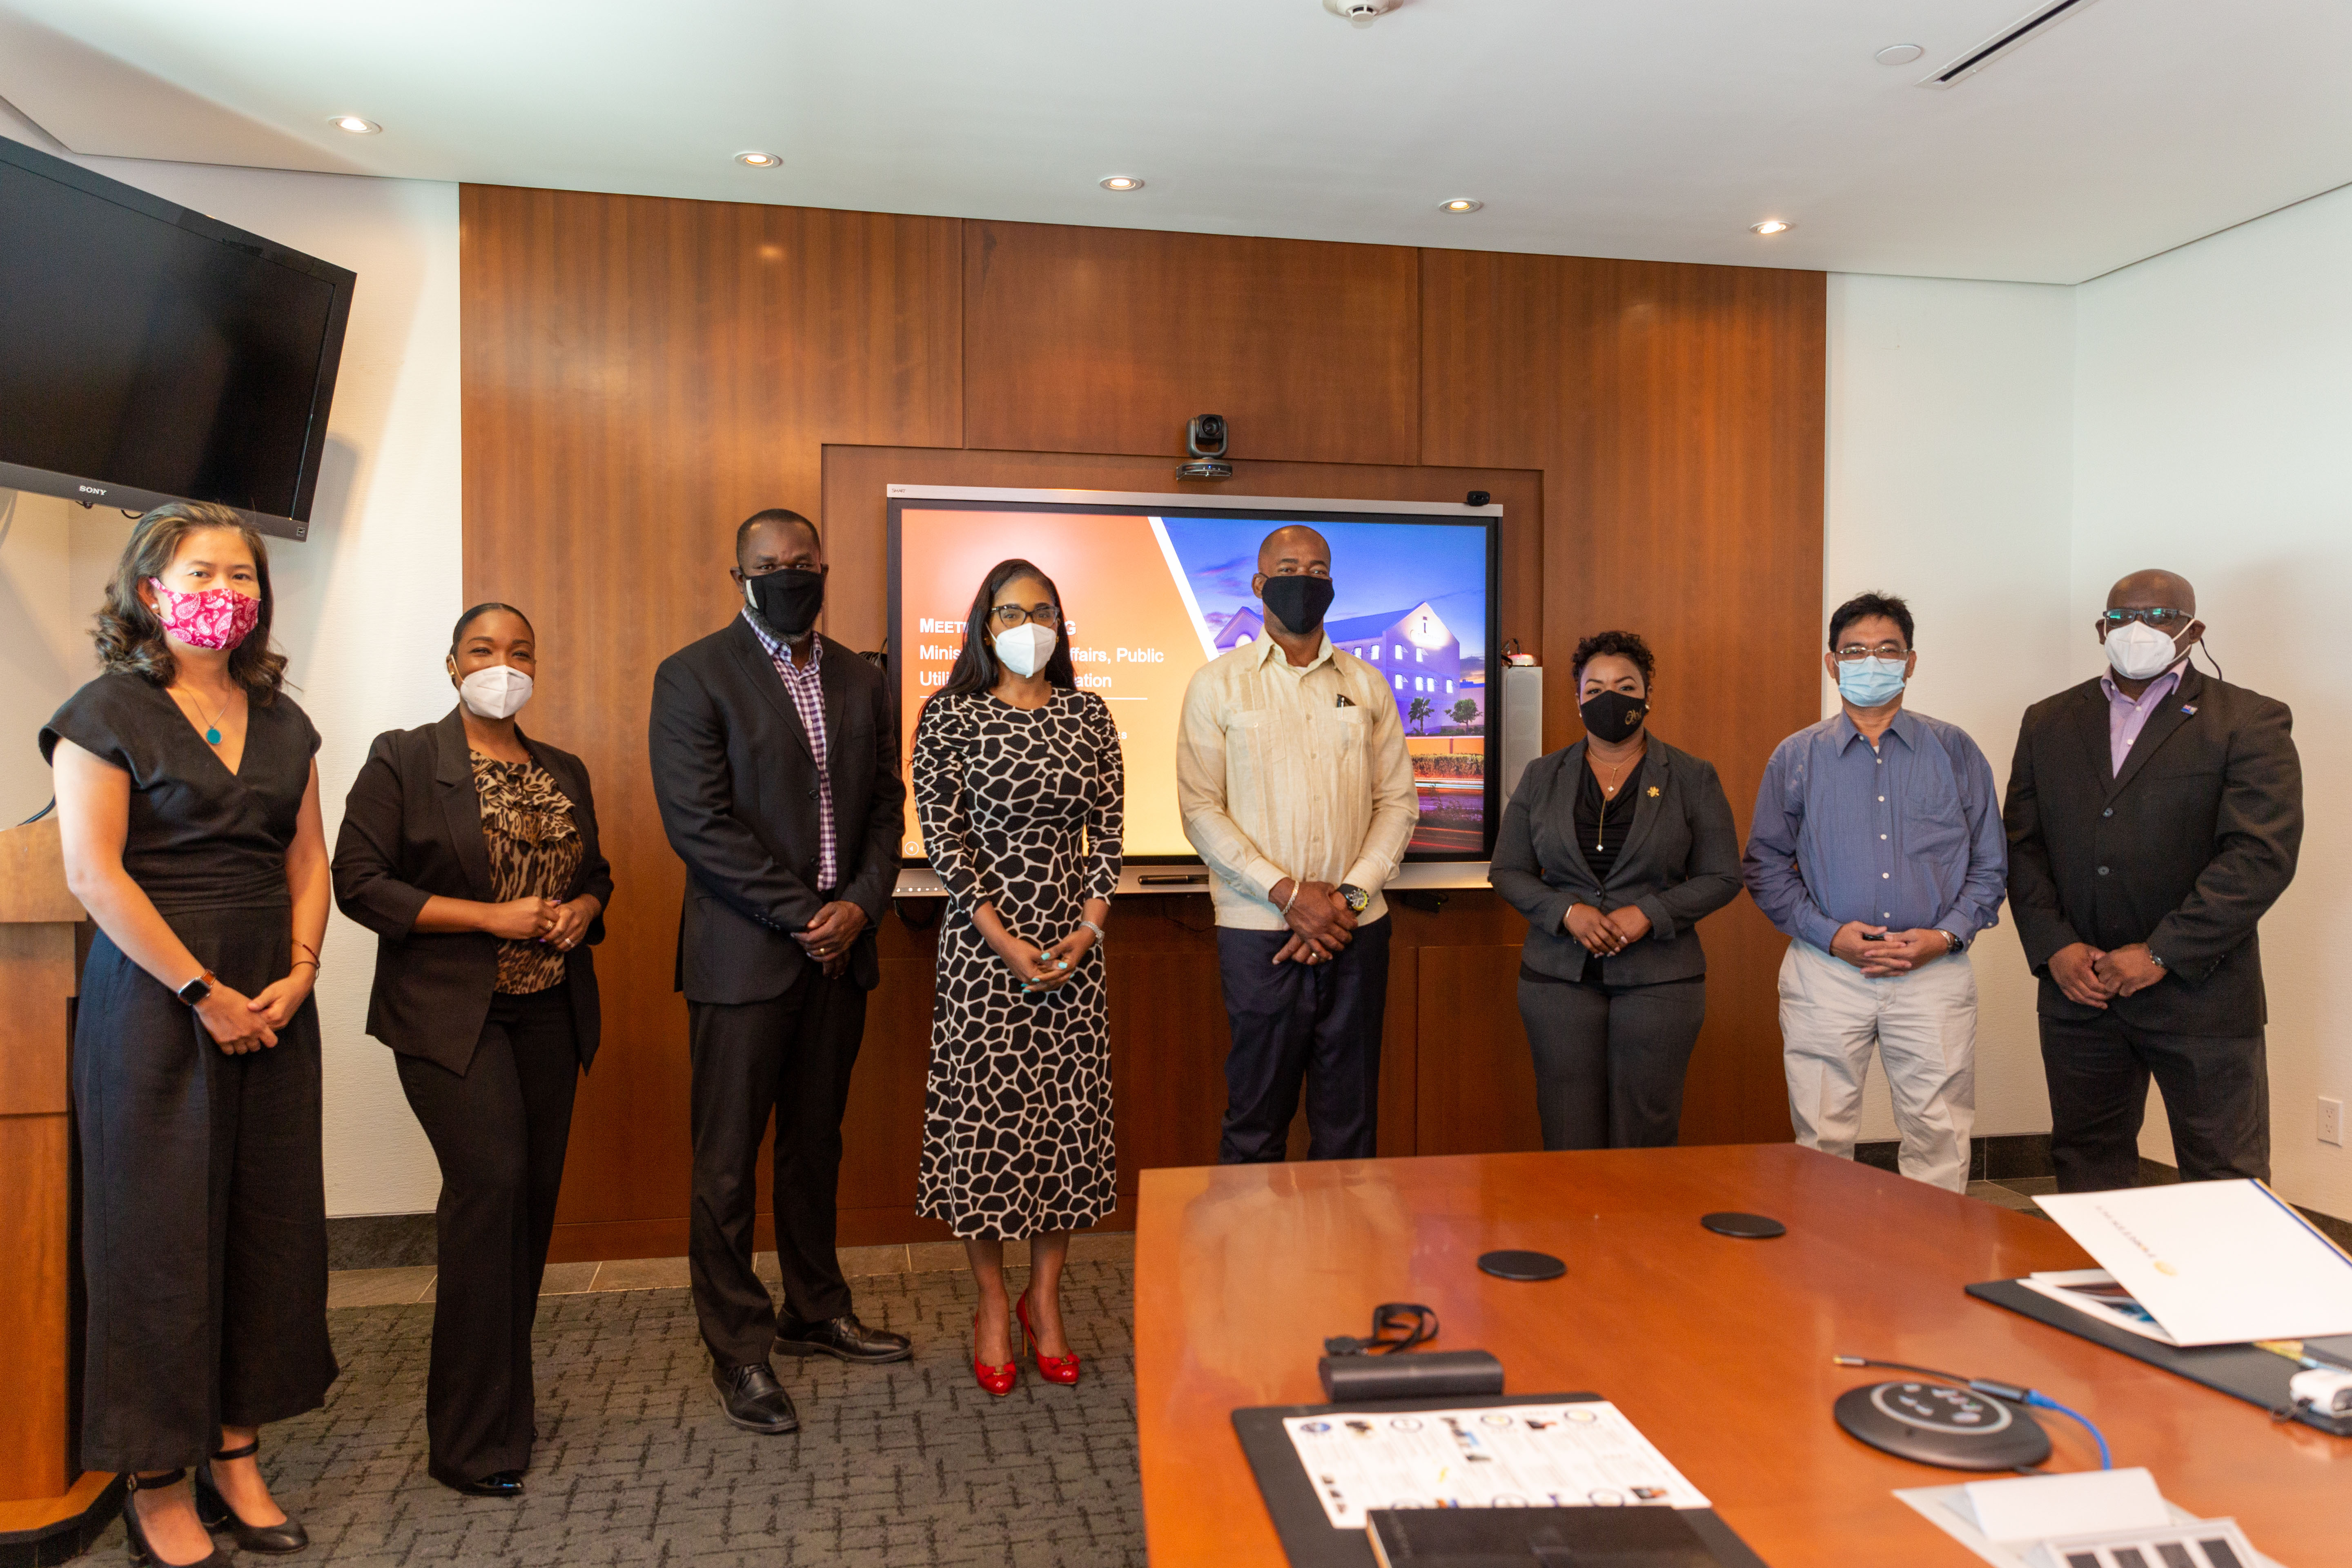 FortisTCI Welcomes Minister of Home Affairs, Public Utilities and Transportation